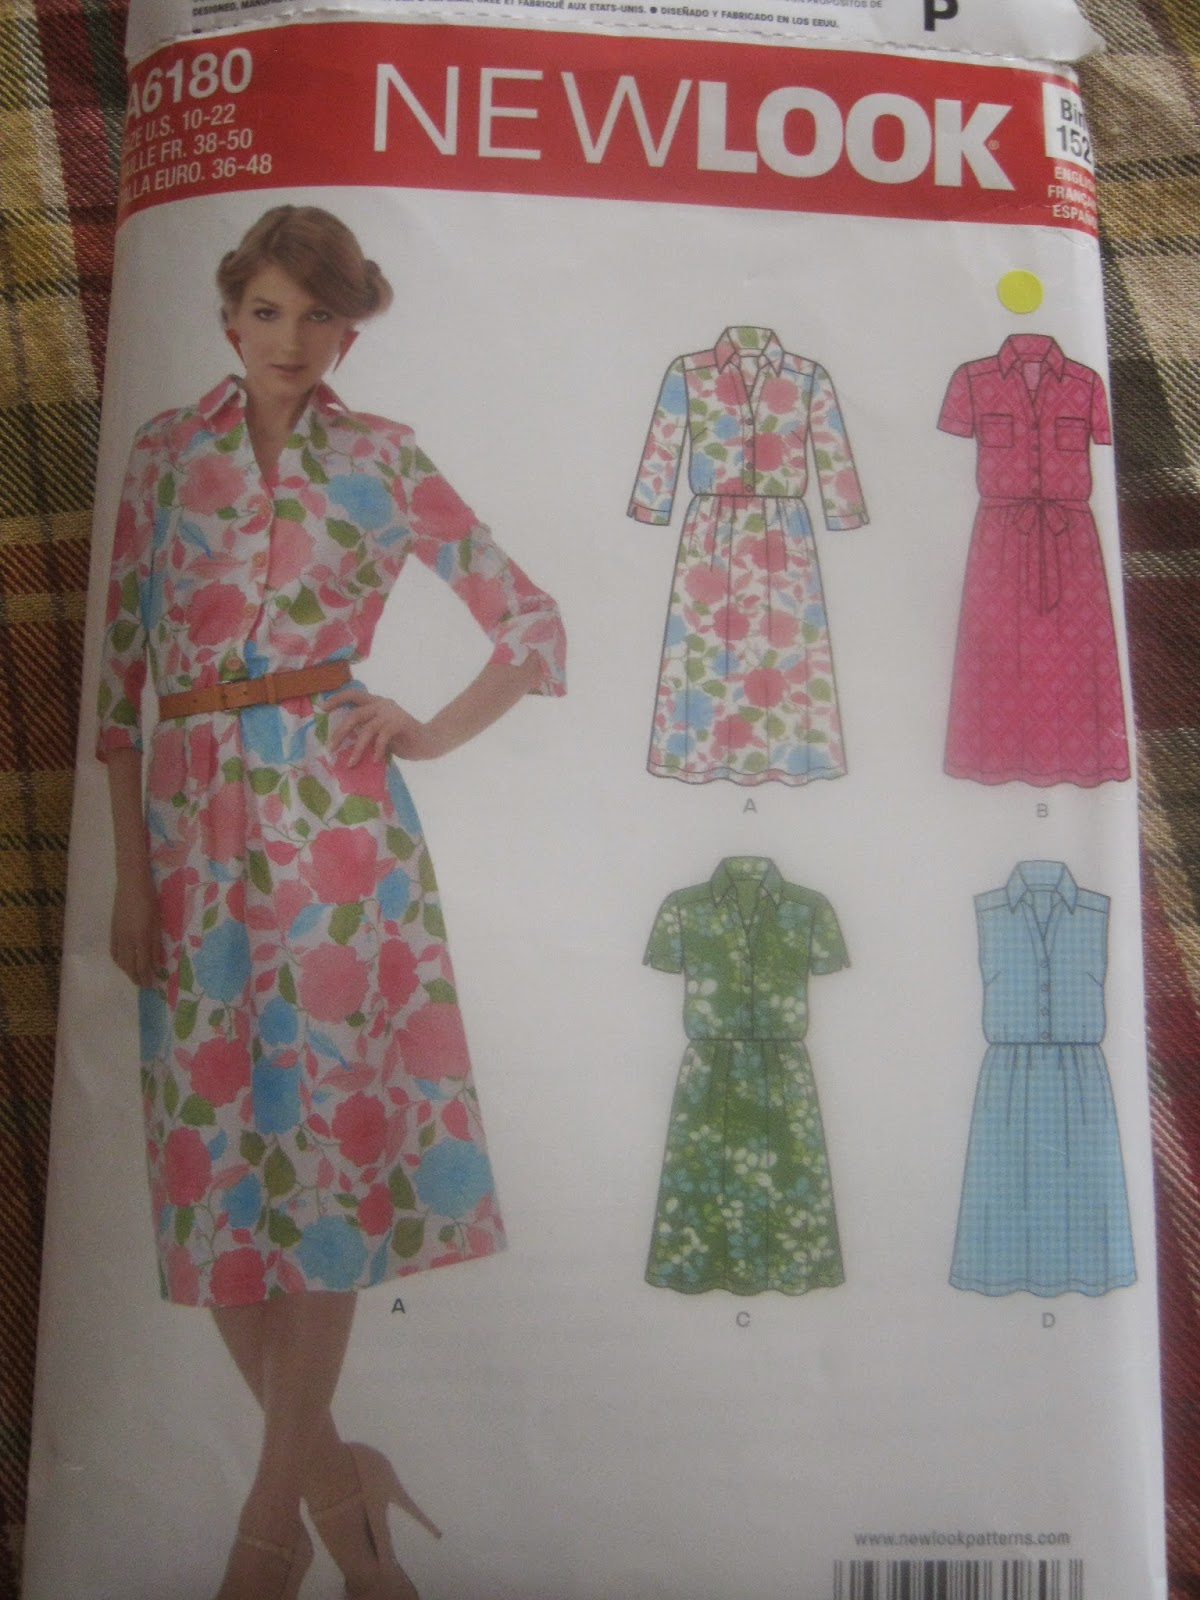 New Look A6180 Shirt Dress Pattern www.sewplus.blogspot.com